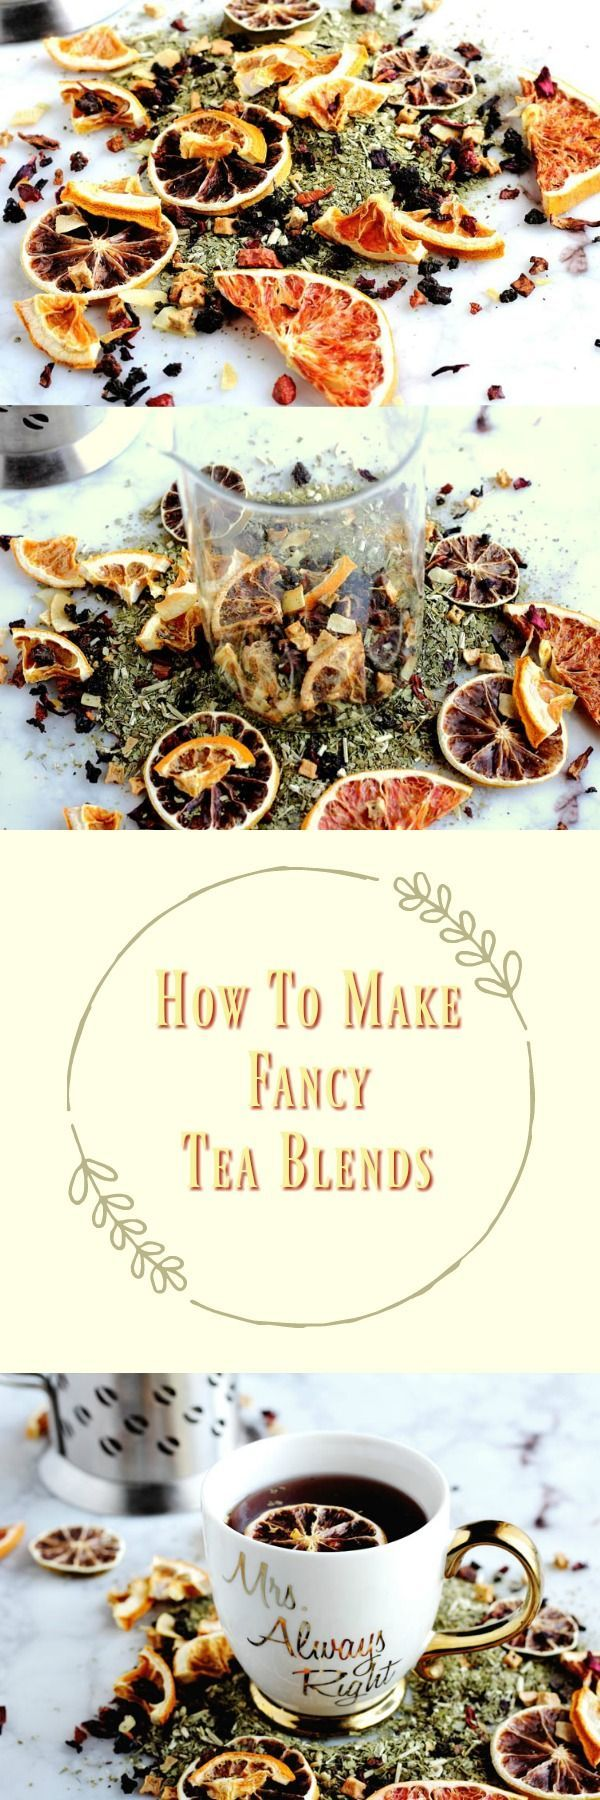 How To Make Fancy Tea Blends Plus: My Favorite One How To Make Fancy Tea Blends Plus: My Favorite One -  -